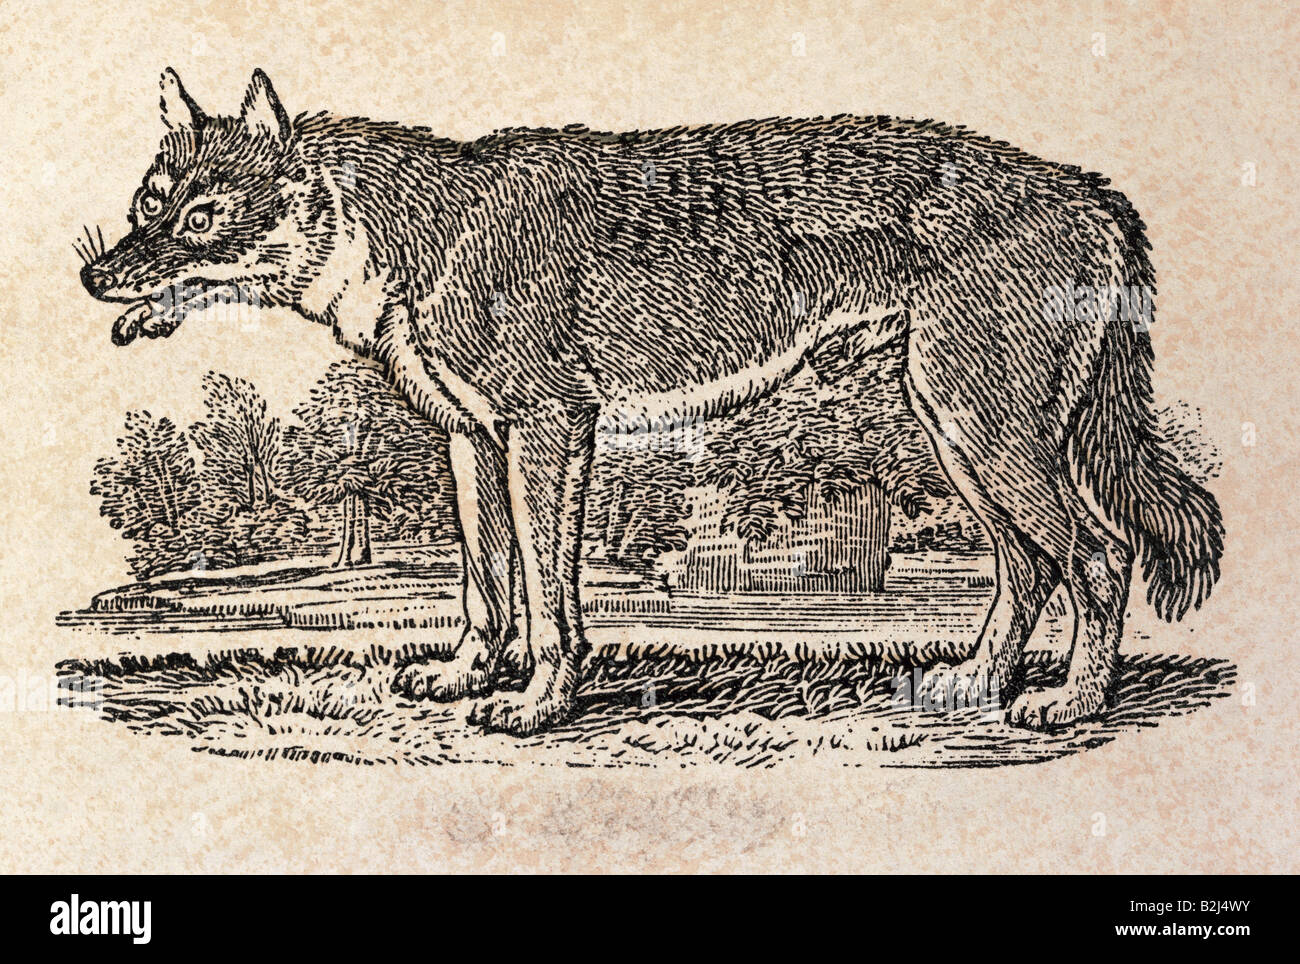 zoology / animal, mammal / mammalian, wolfs, Grey Wolf (Canis lupus), graphic, 'The New South Wales Wolf', - Stock Image